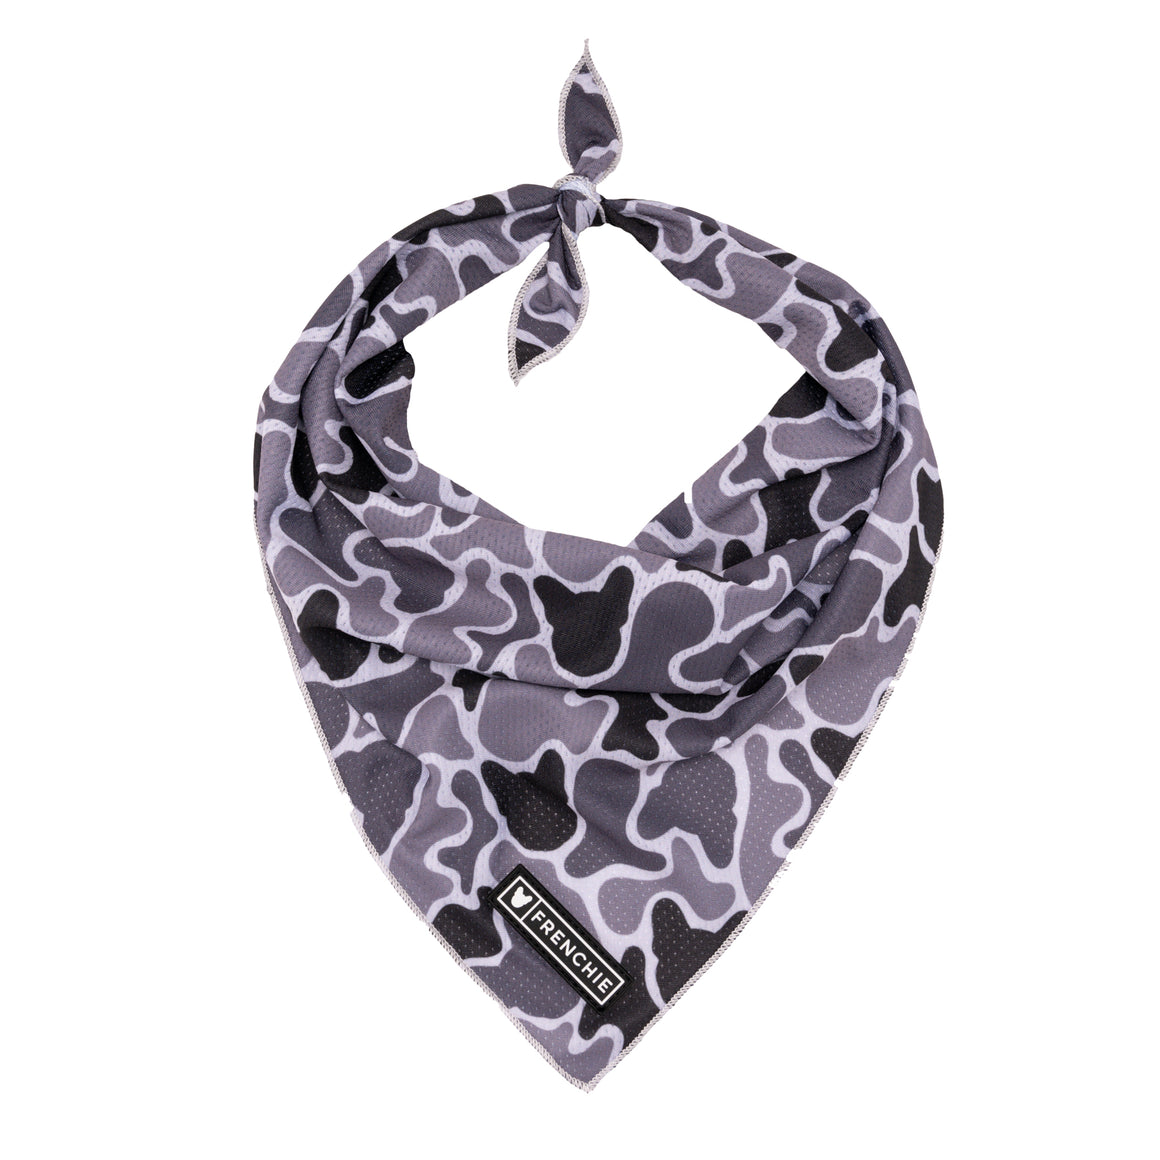 Frenchie Cooling Bandana- Black Frenchie Camo